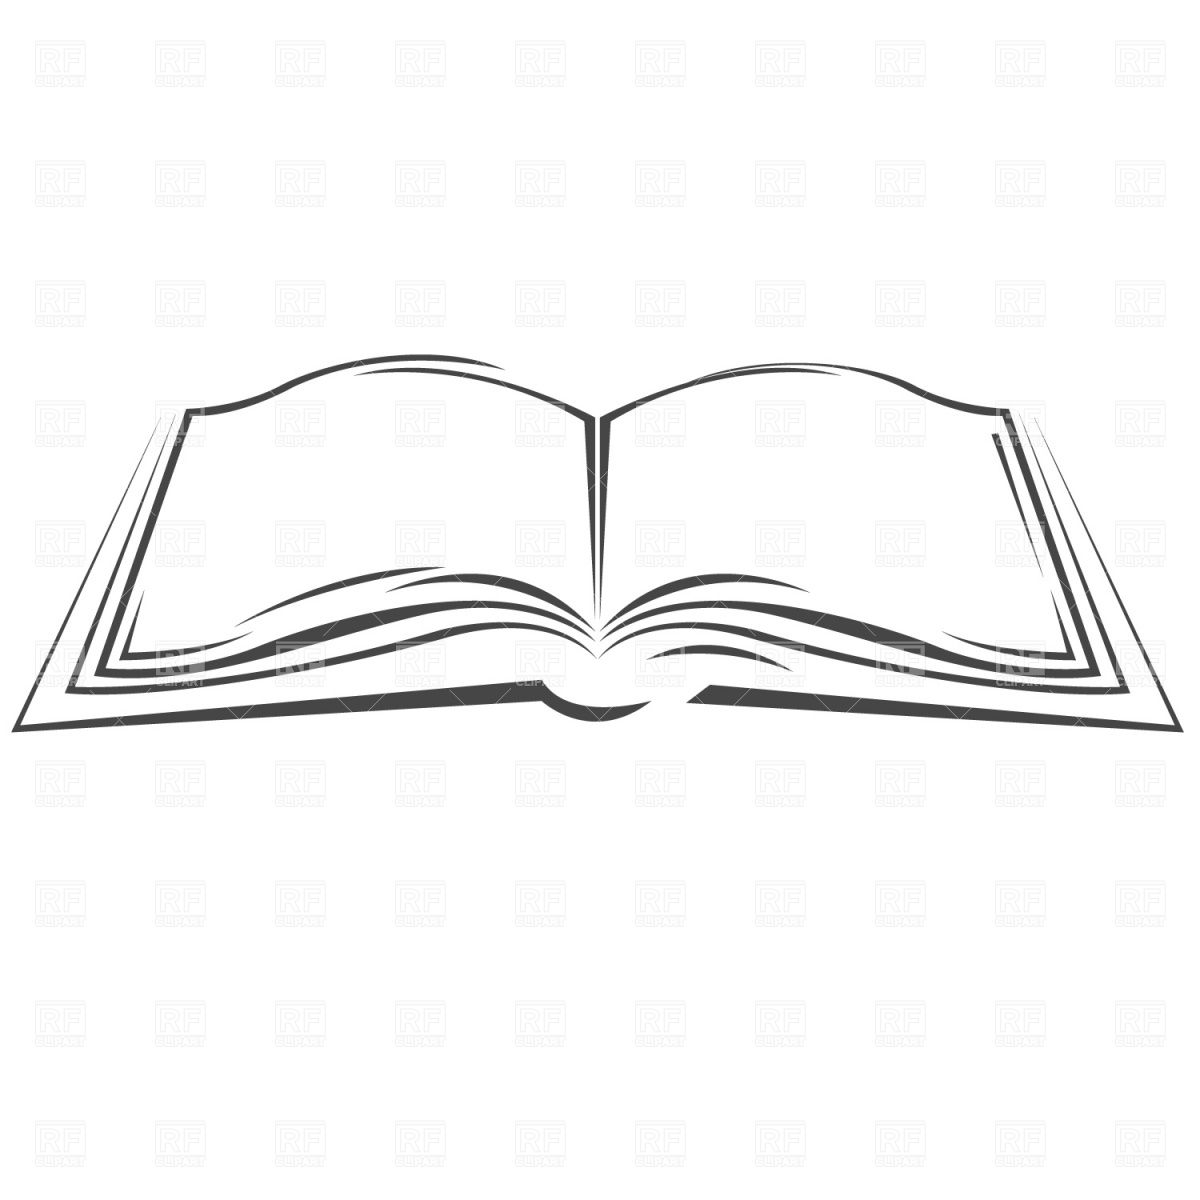 medium resolution of symbolic open book download royalty free vector clipart eps